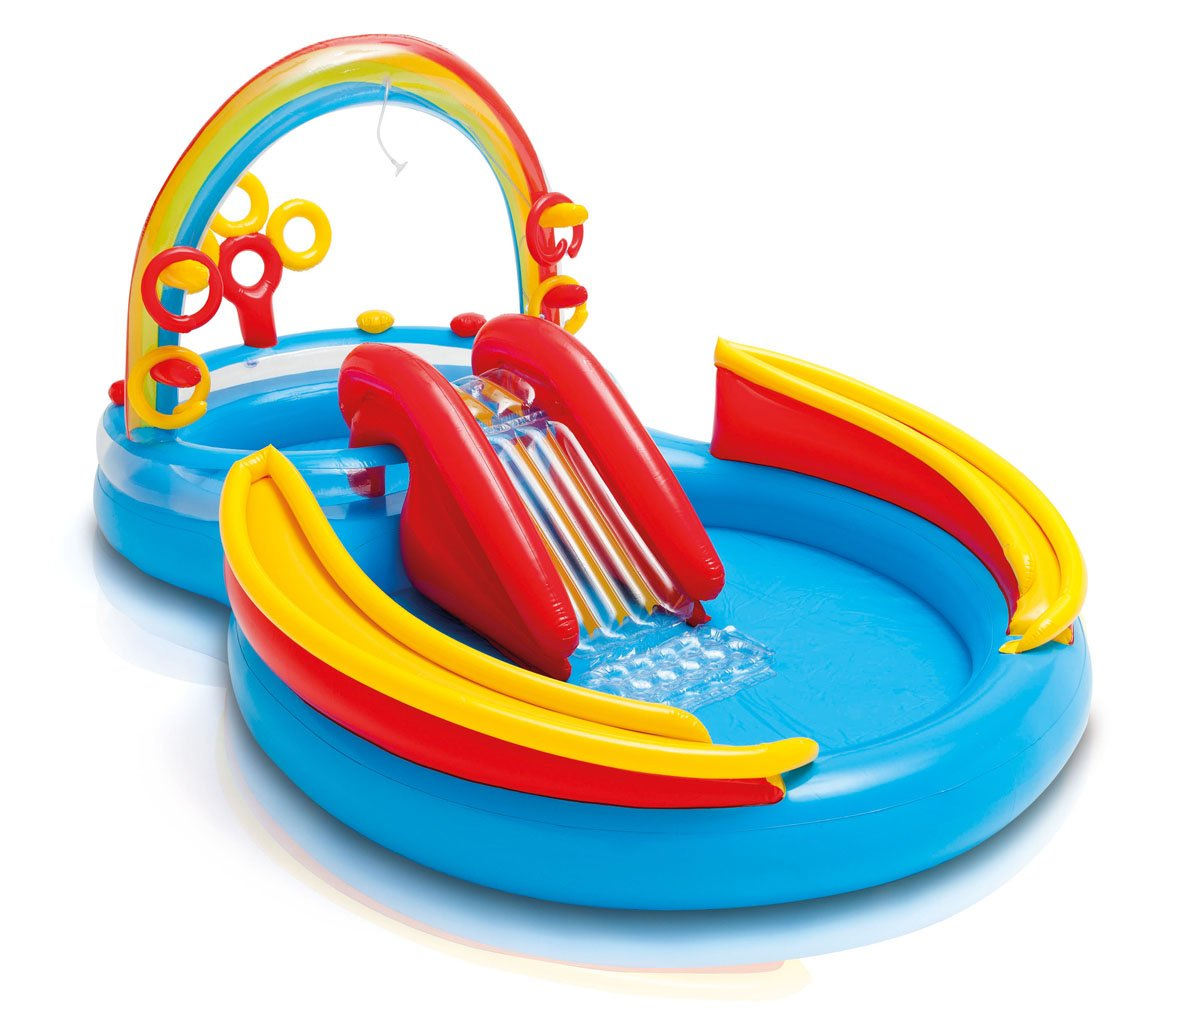 Intex Inflatable Kids Pool,Water Play Center w/Slide + Quick Fill Air Pump by Intex